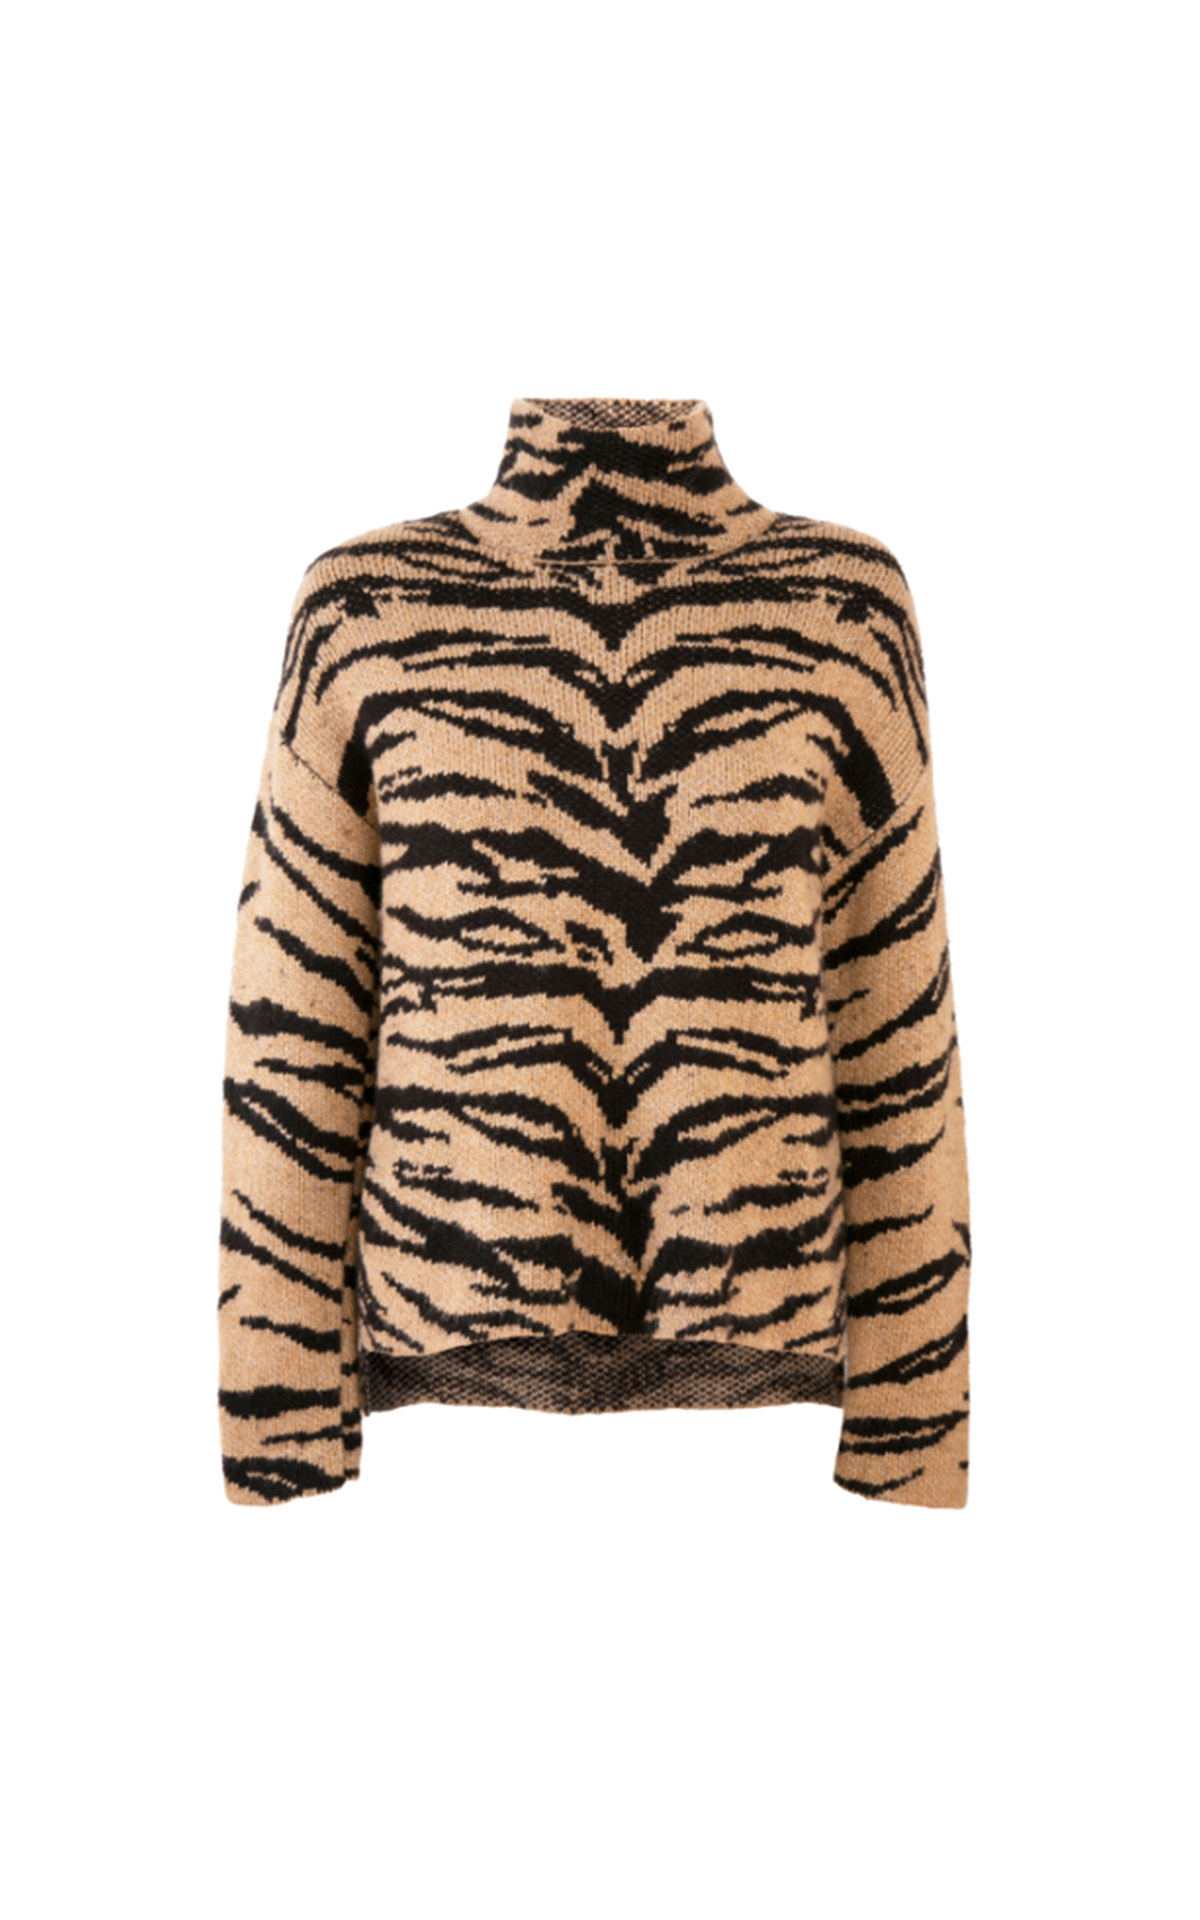 DKNY Zebra turtleneck sweater from Bicester Village